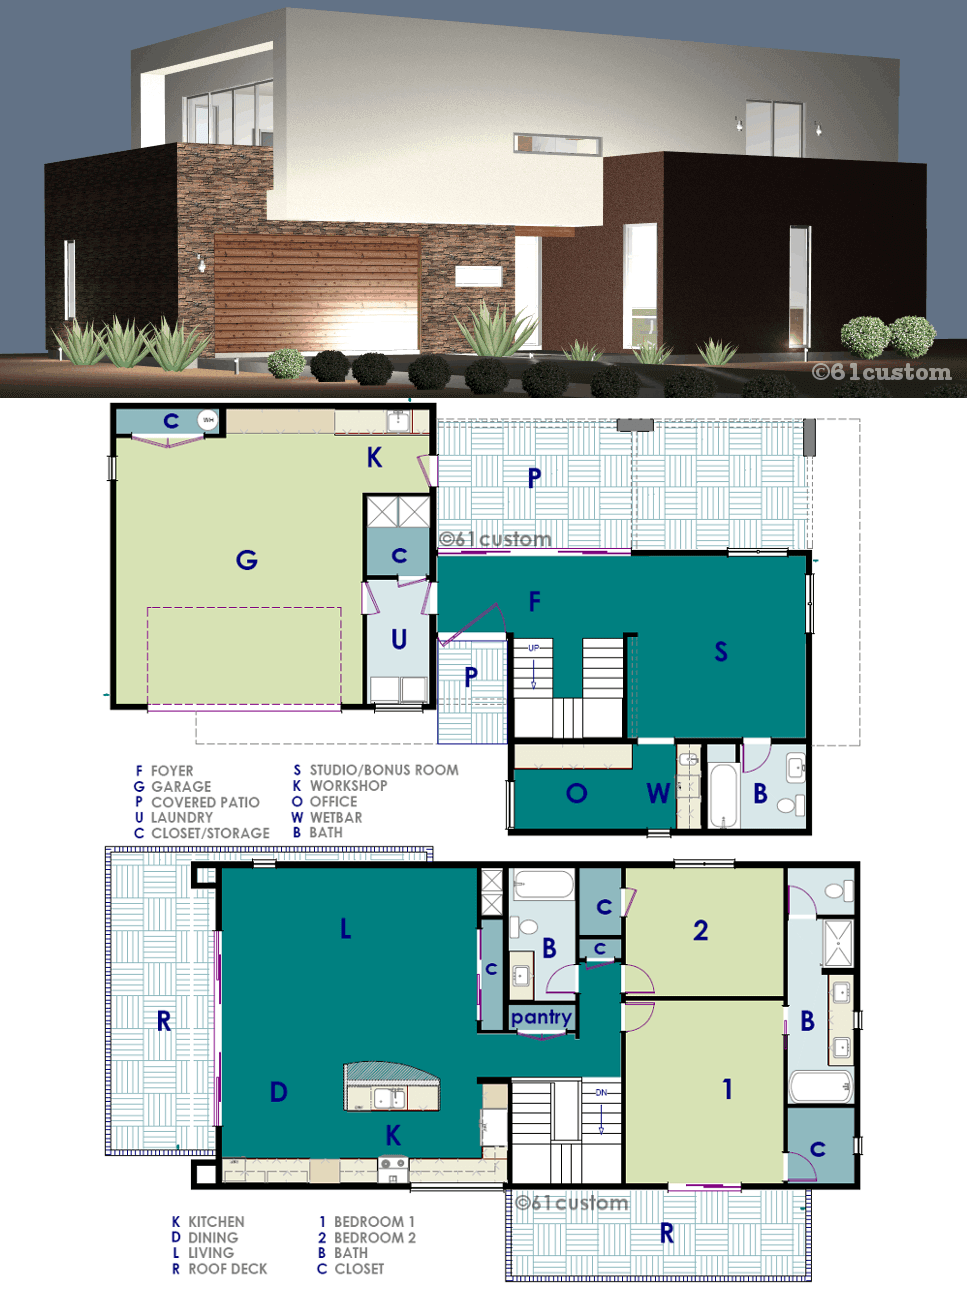 Ultra Modern Live-Work House Plan | 61custom ...